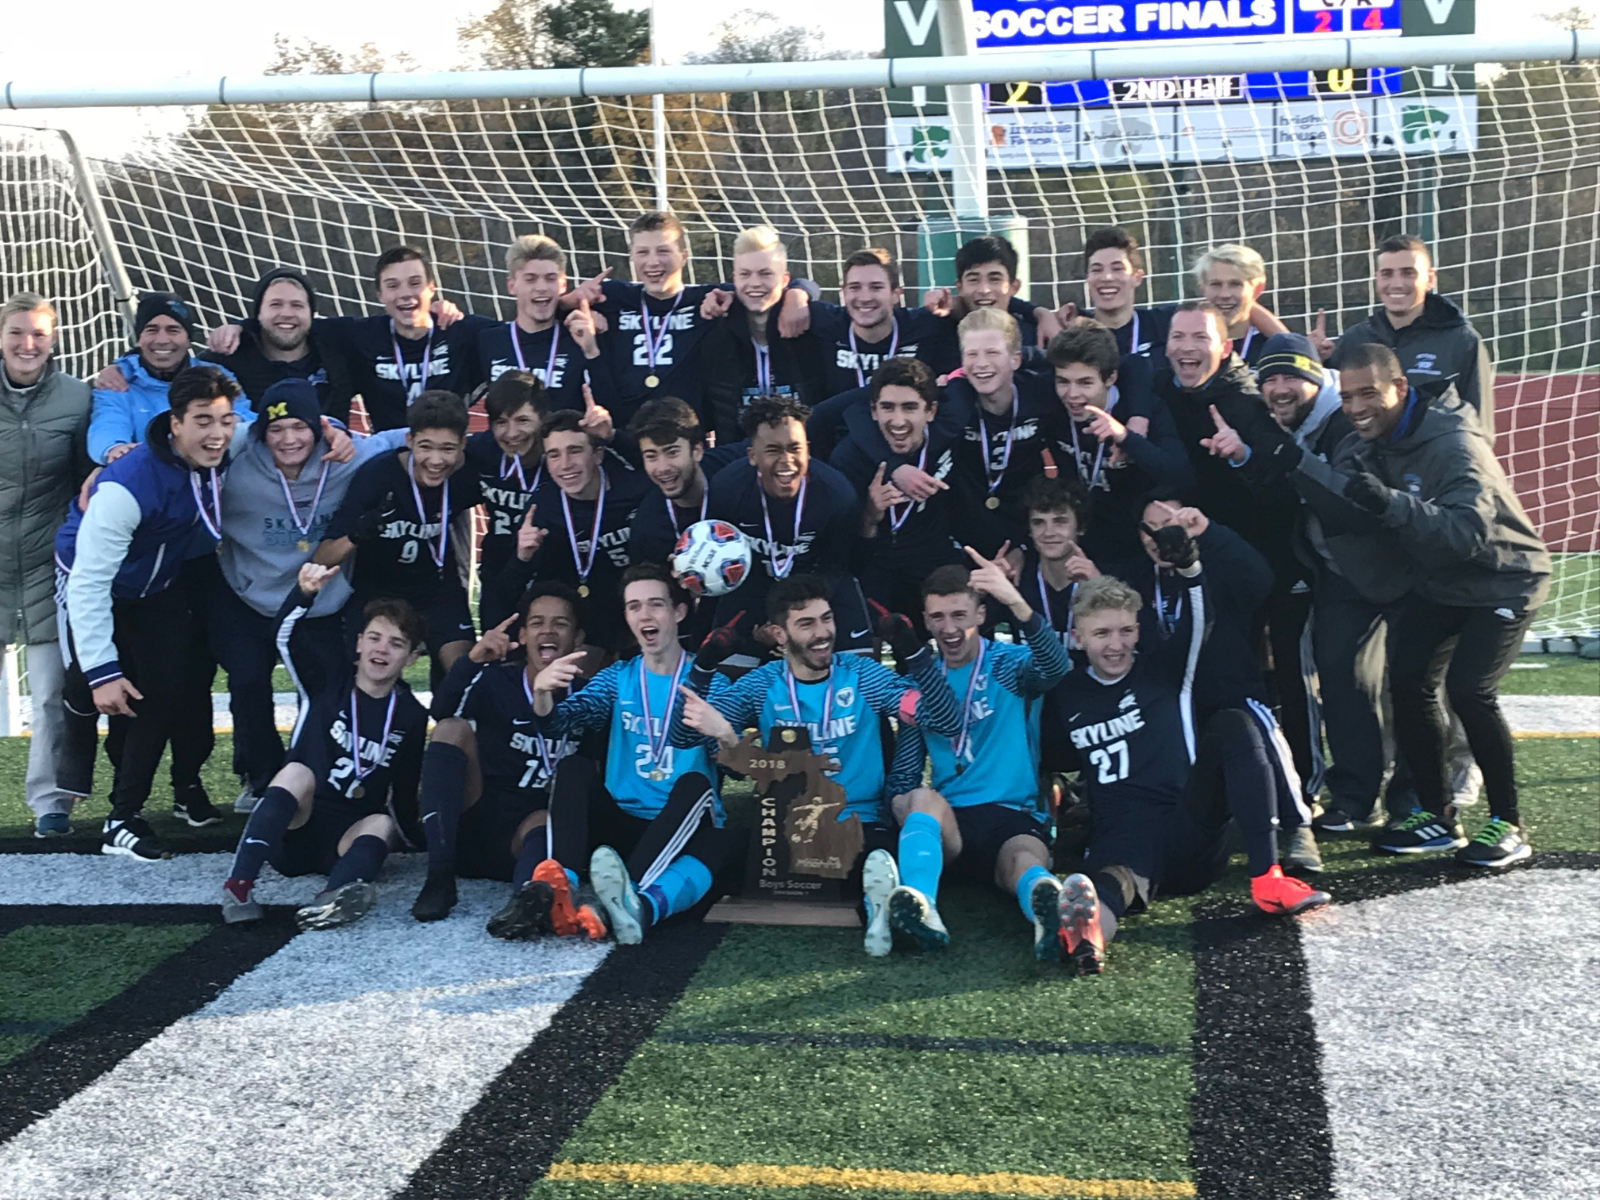 Boys Soccer State Champions!!